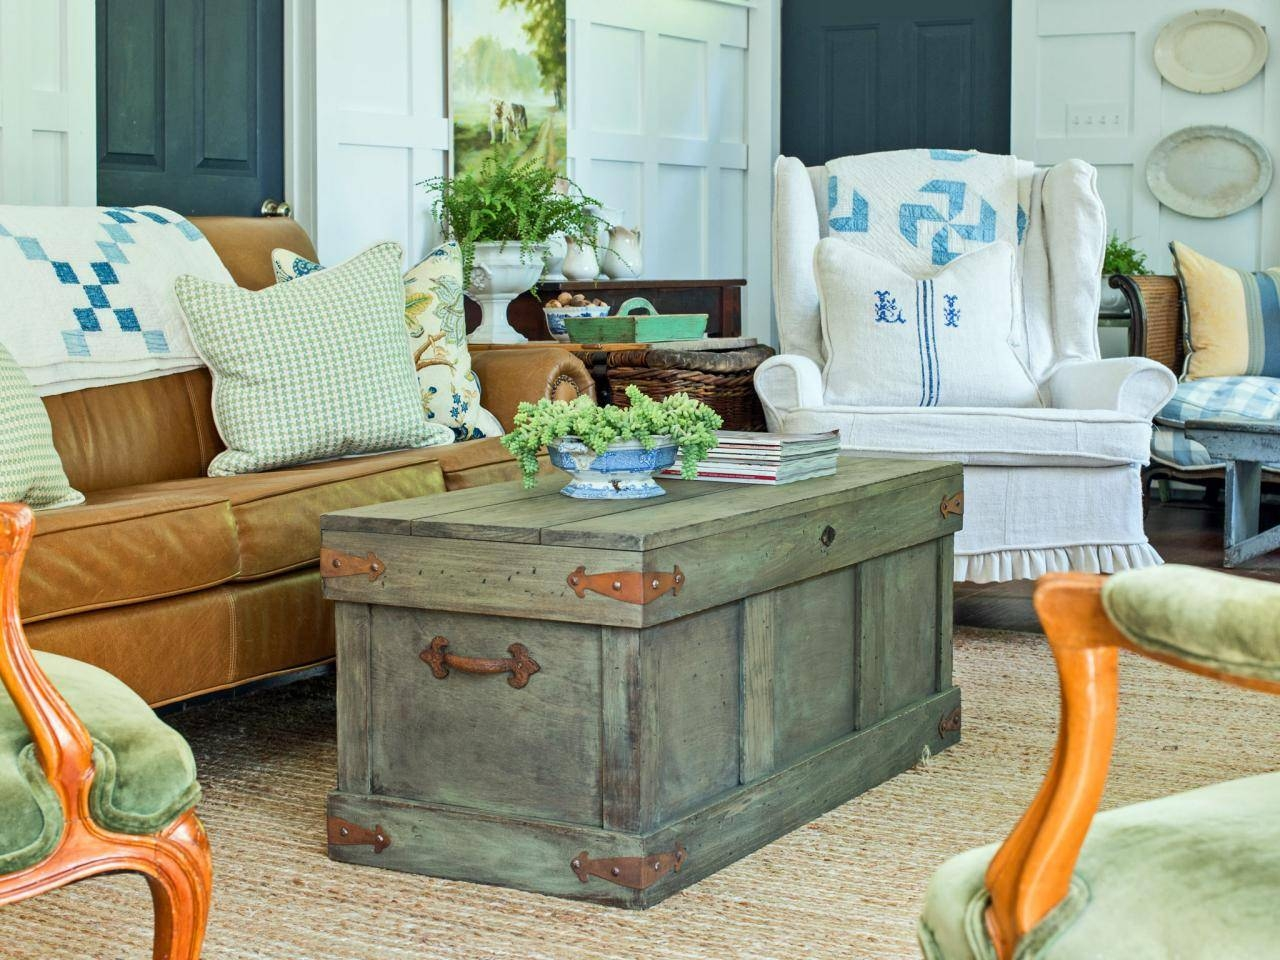 How To Construct A Rustic Trunk-Style Coffee Table   Hgtv in Rustic Style Coffee Tables (Image 22 of 30)